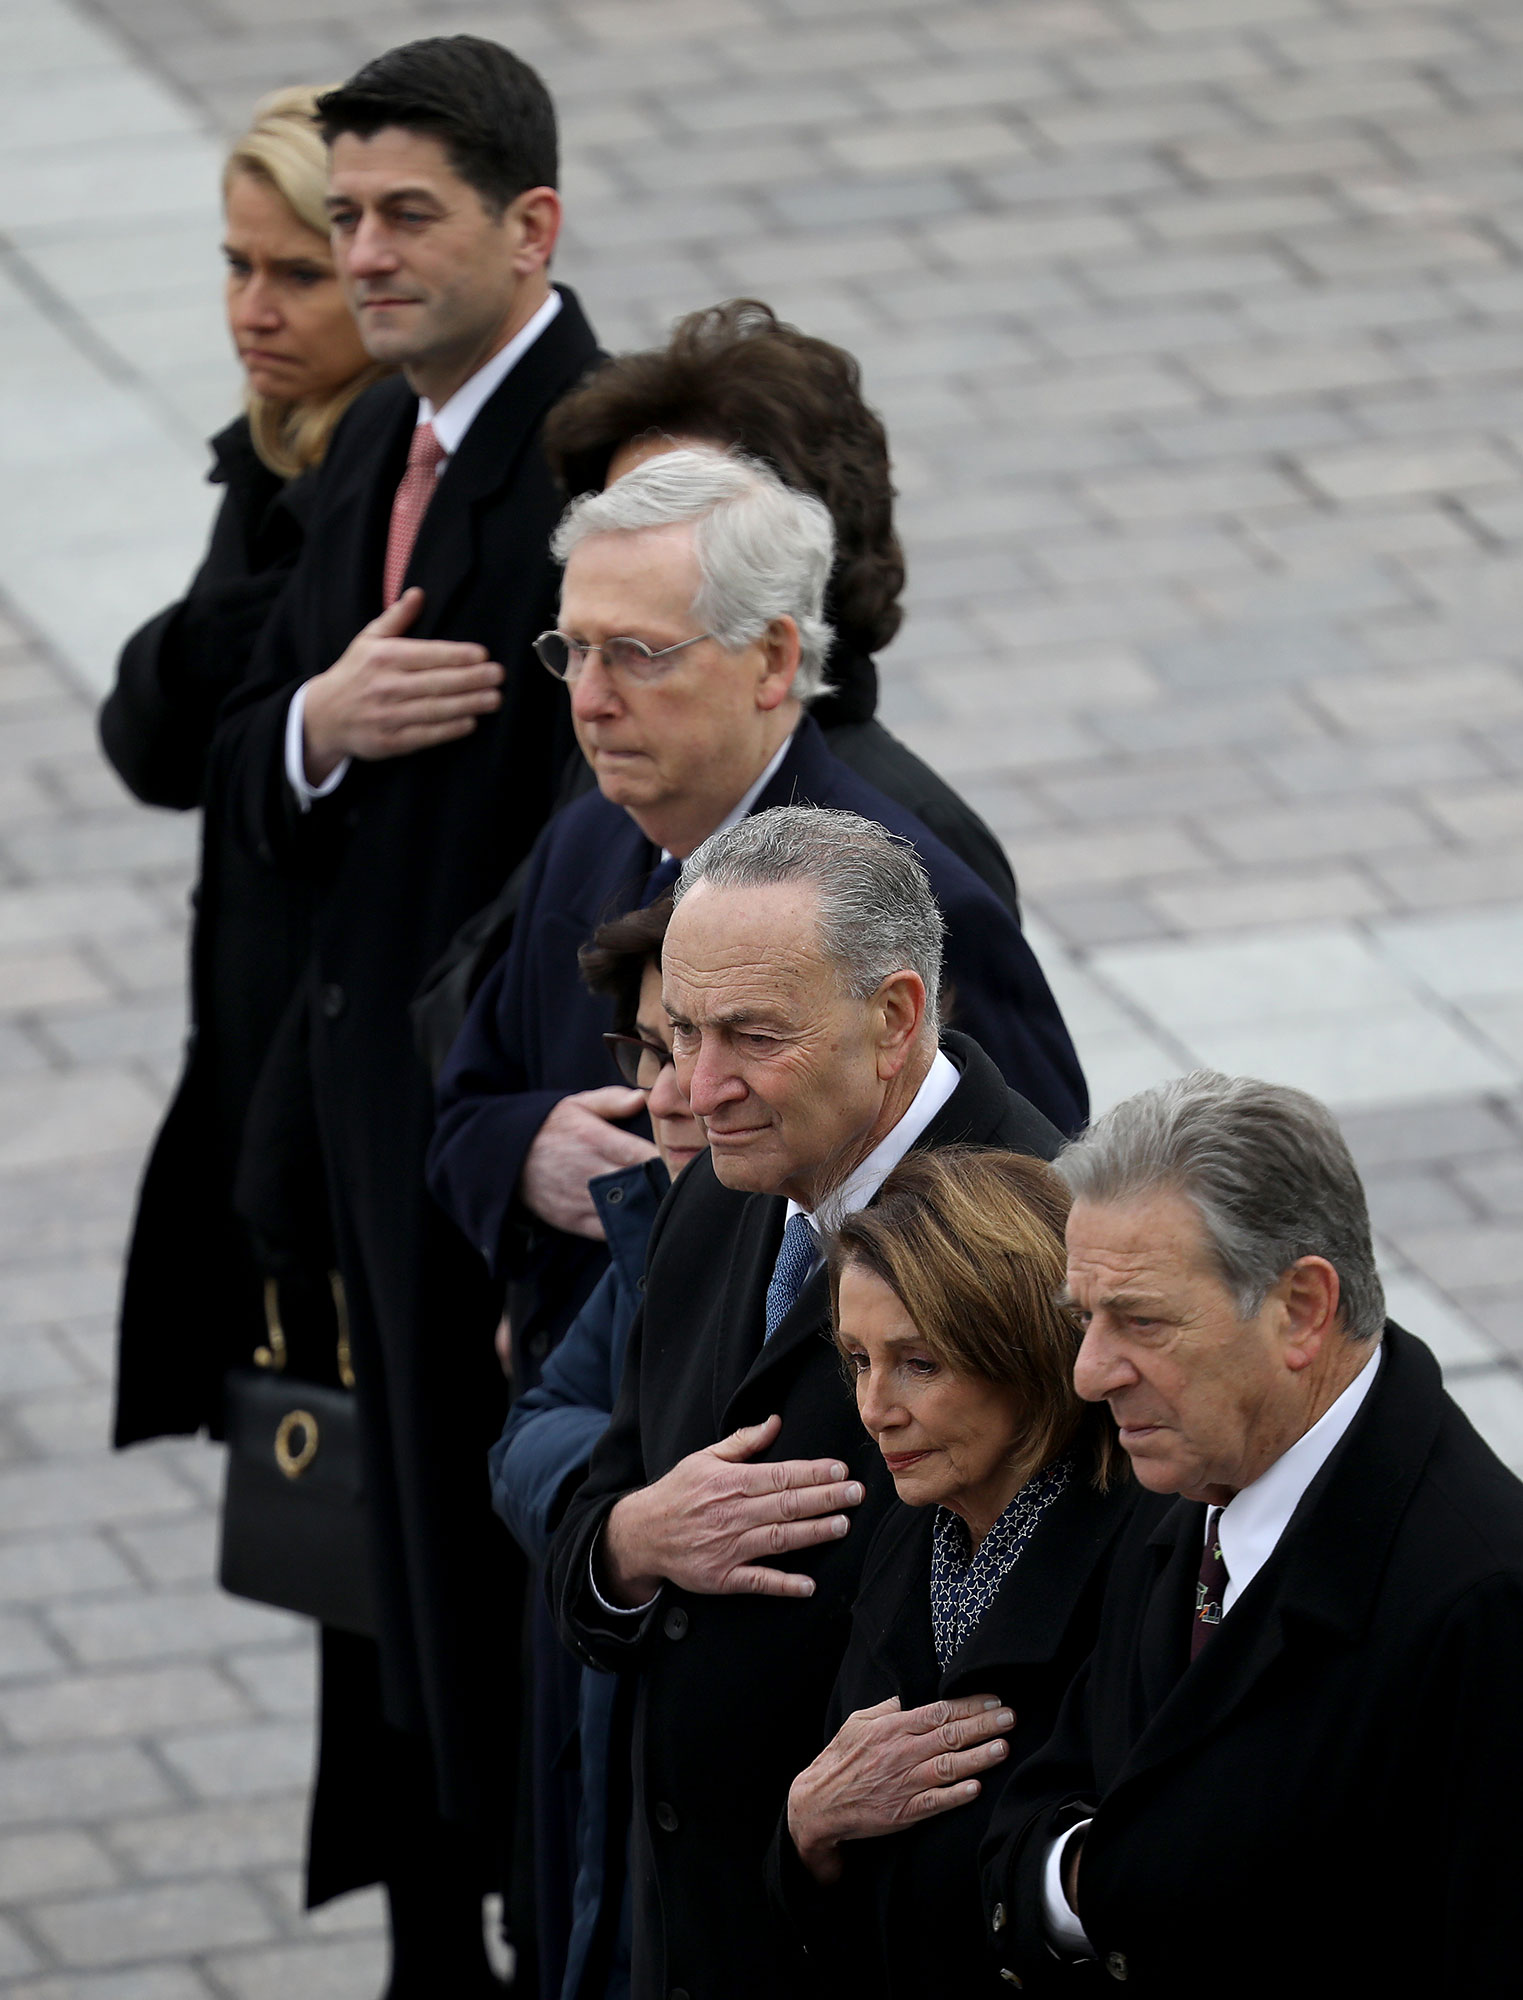 george bush funeral - The politicians paid their respects at Wednesday's service.